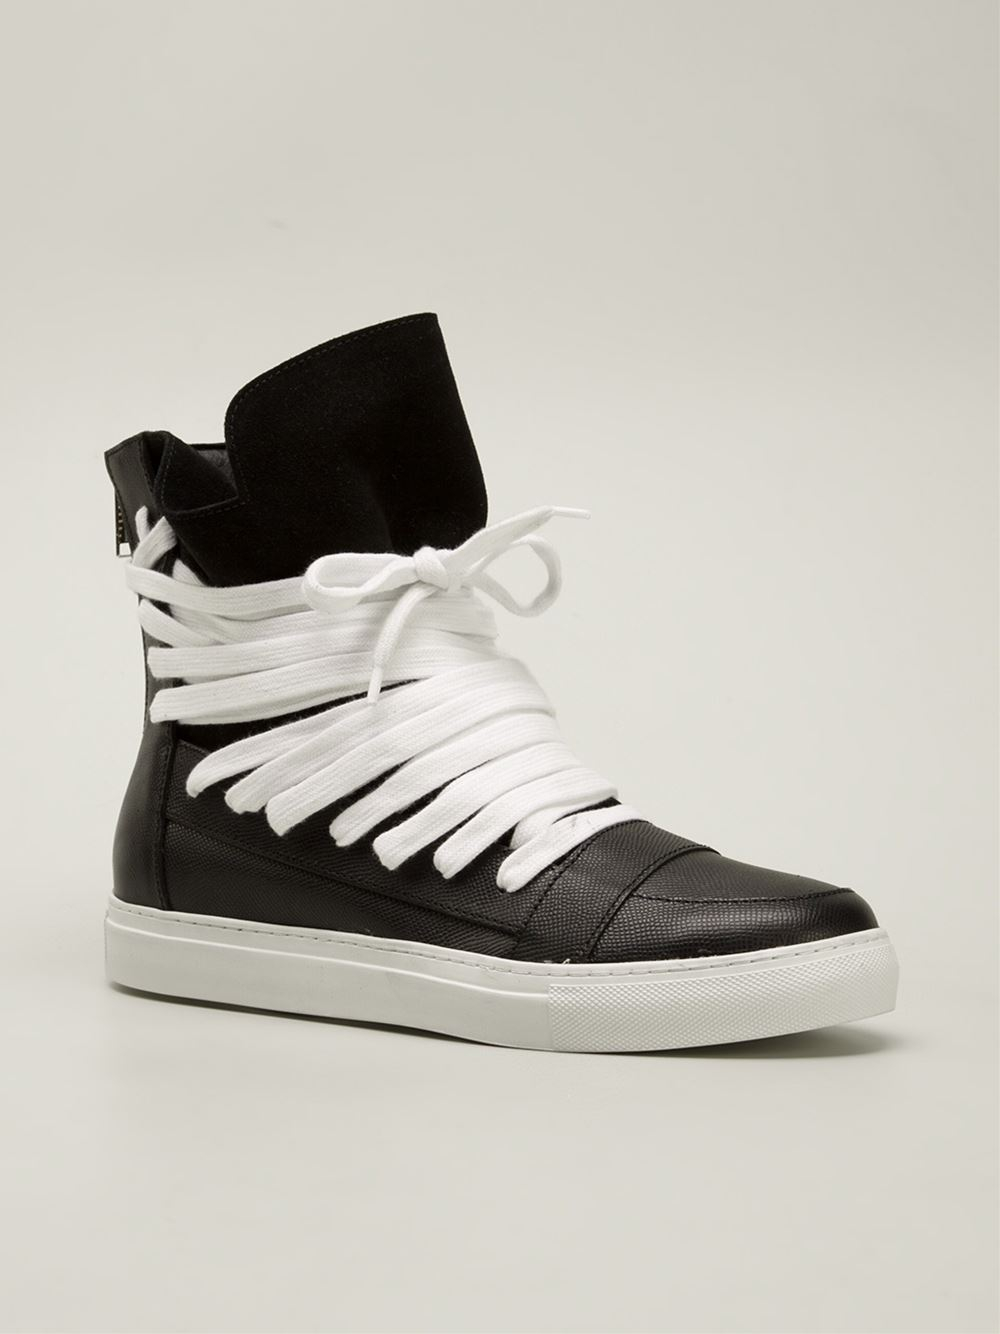 138b0490d1 Lyst - Kris Van Assche Panelled Hi-Top Sneakers in Black for Men